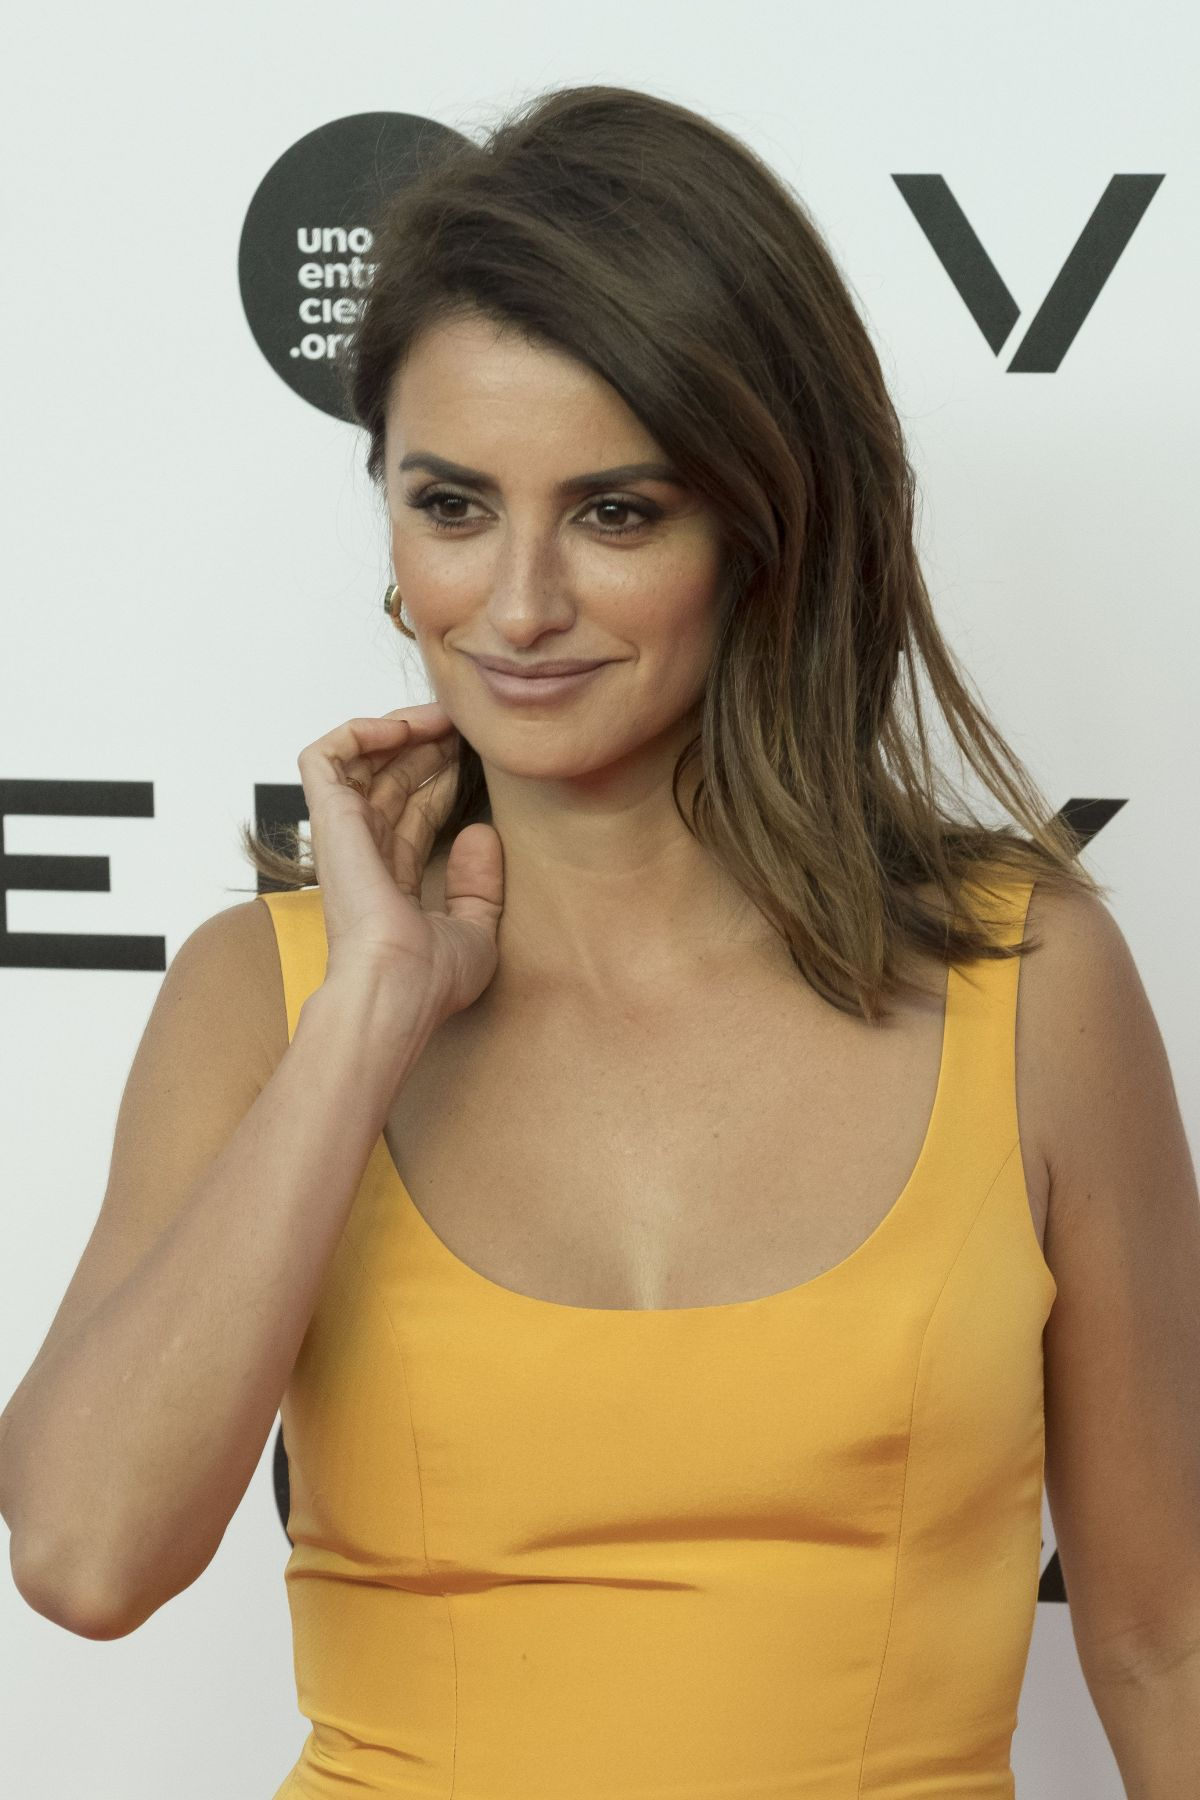 PENELOPE CRUZ at 'One Hundred Thousand' Photocall in Madrid 09/18/201... Penelope Cruz